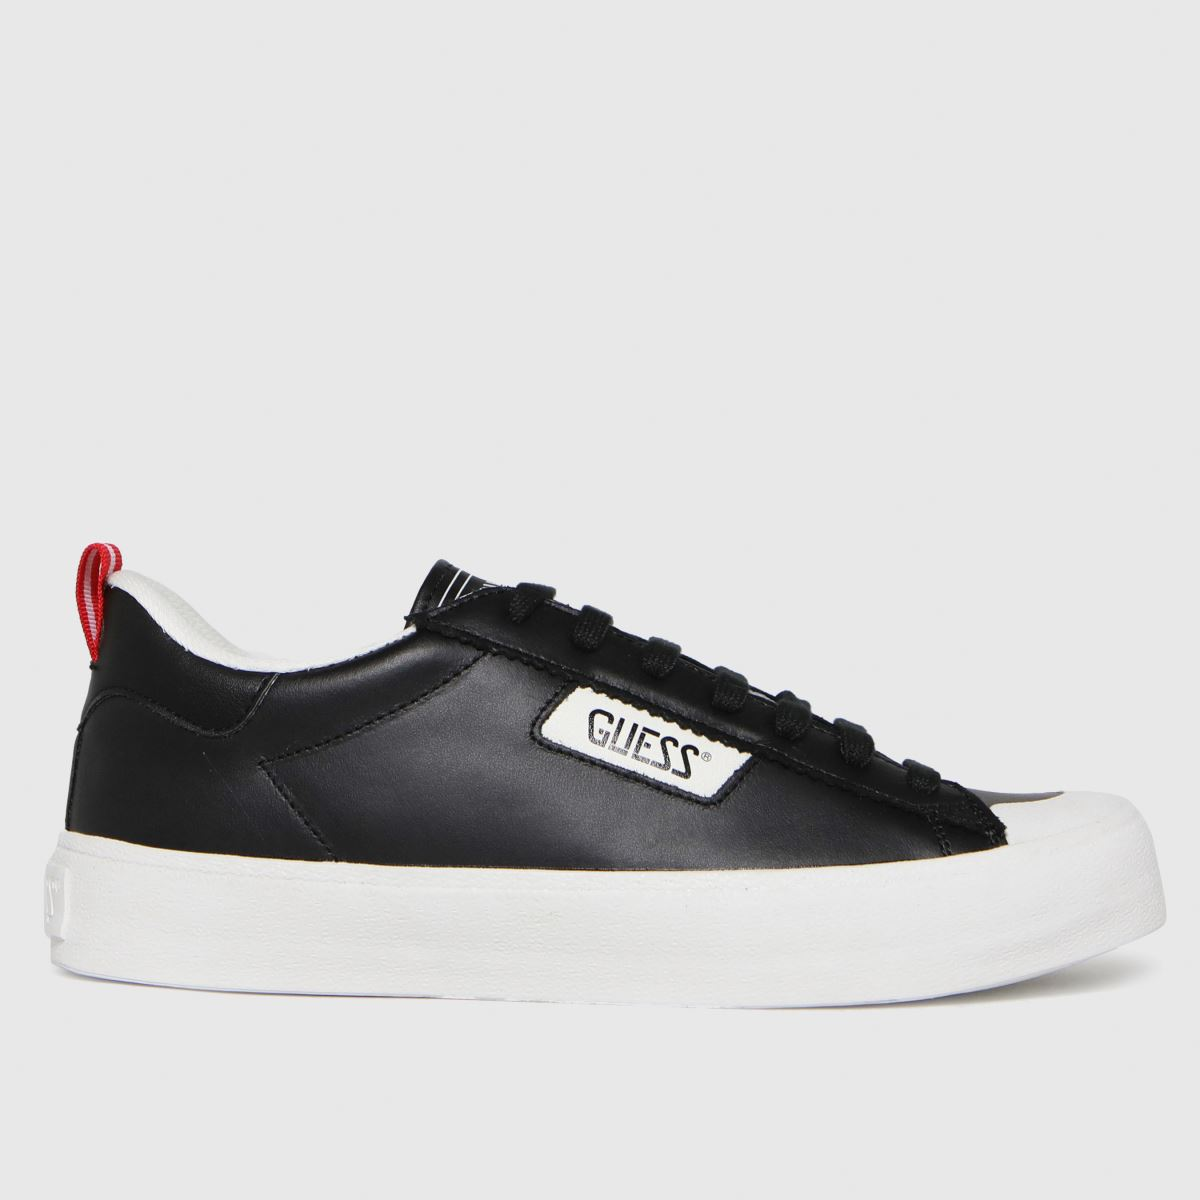 GUESS Black & White Mima Trainers